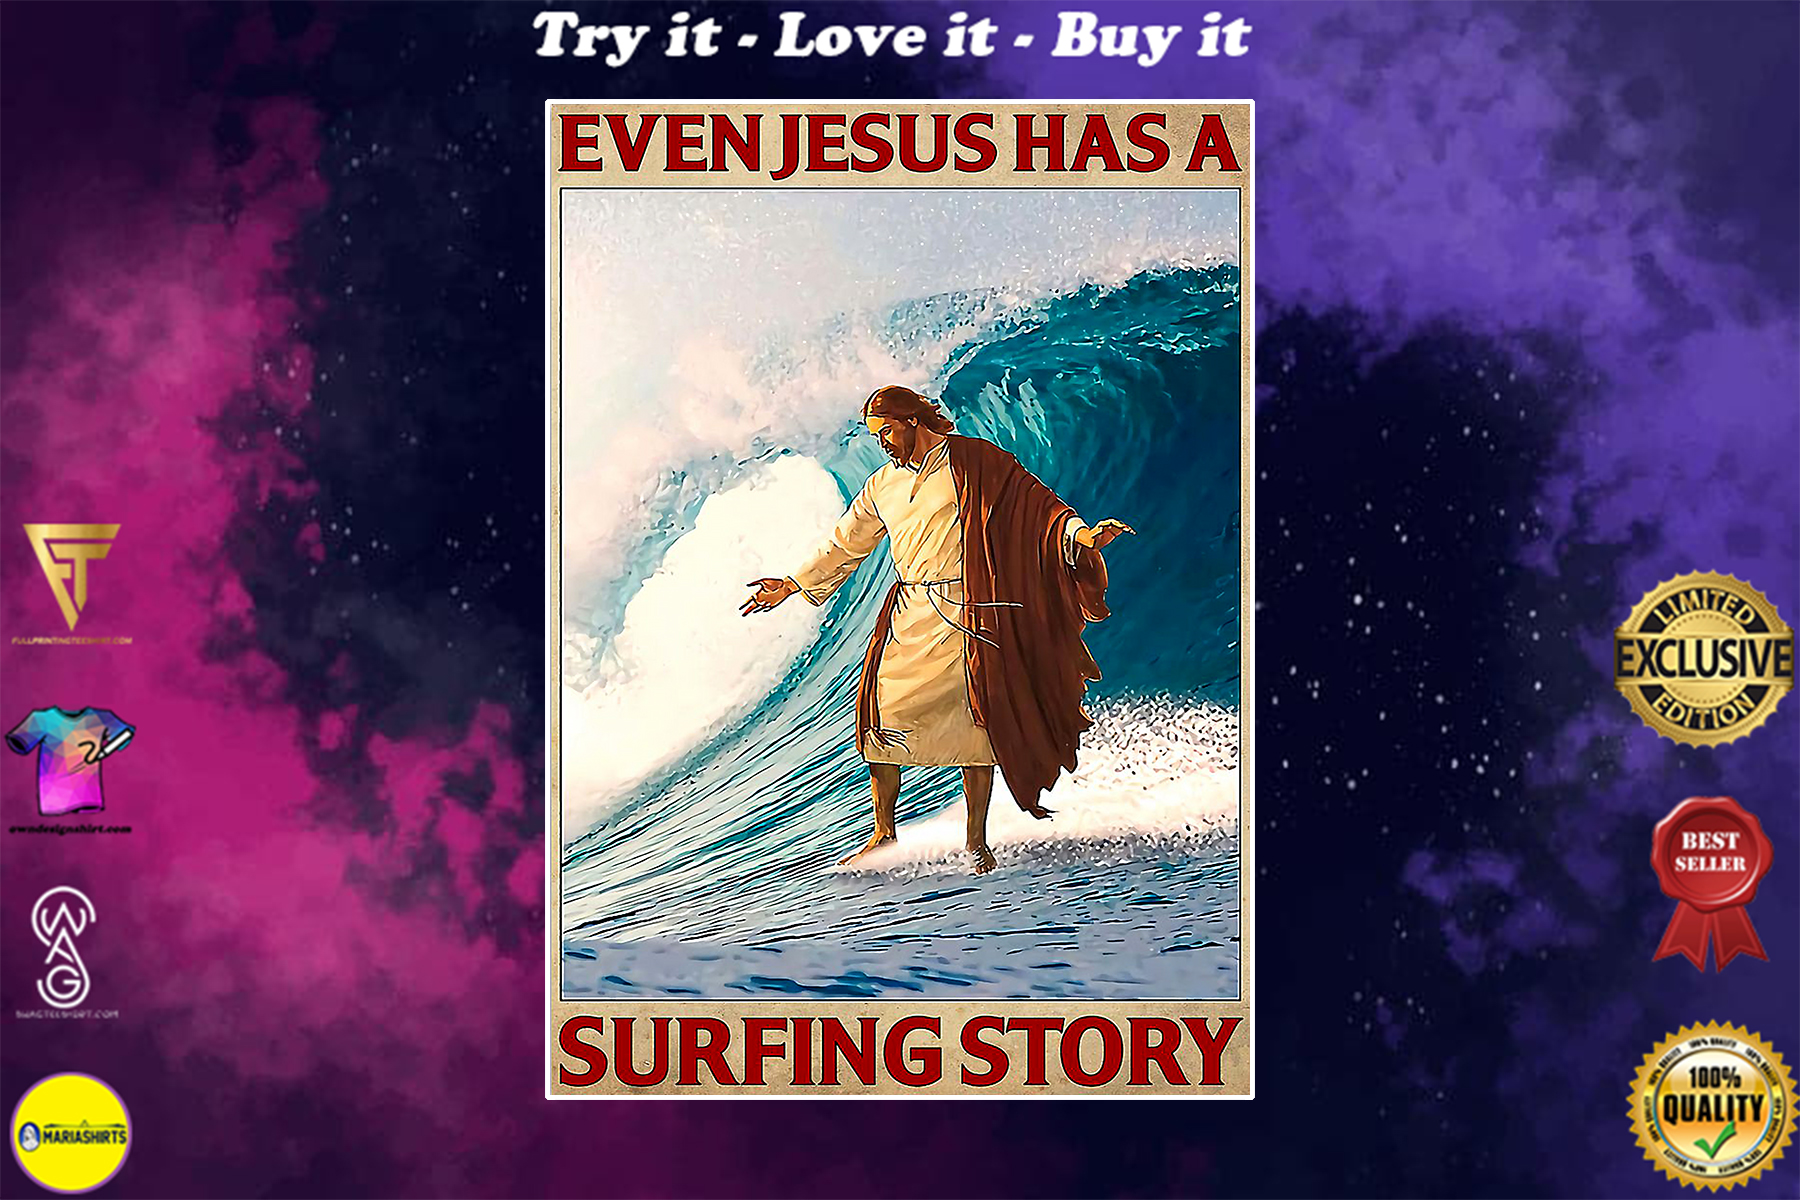 surfing even Jesus has a surfing story vintage poster